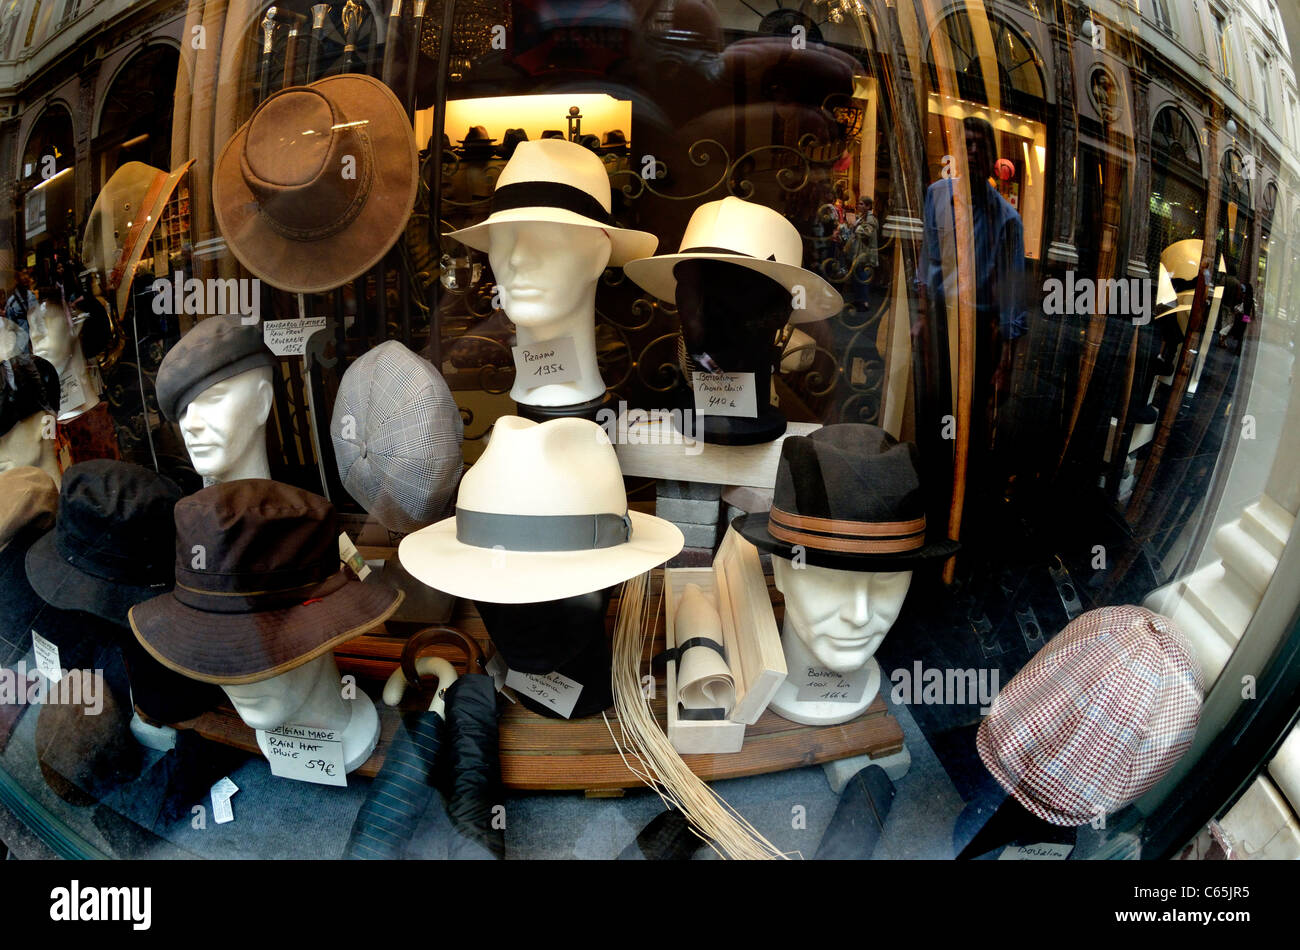 8263cb764e26c Hats In Shop Window Stock Photos   Hats In Shop Window Stock Images ...